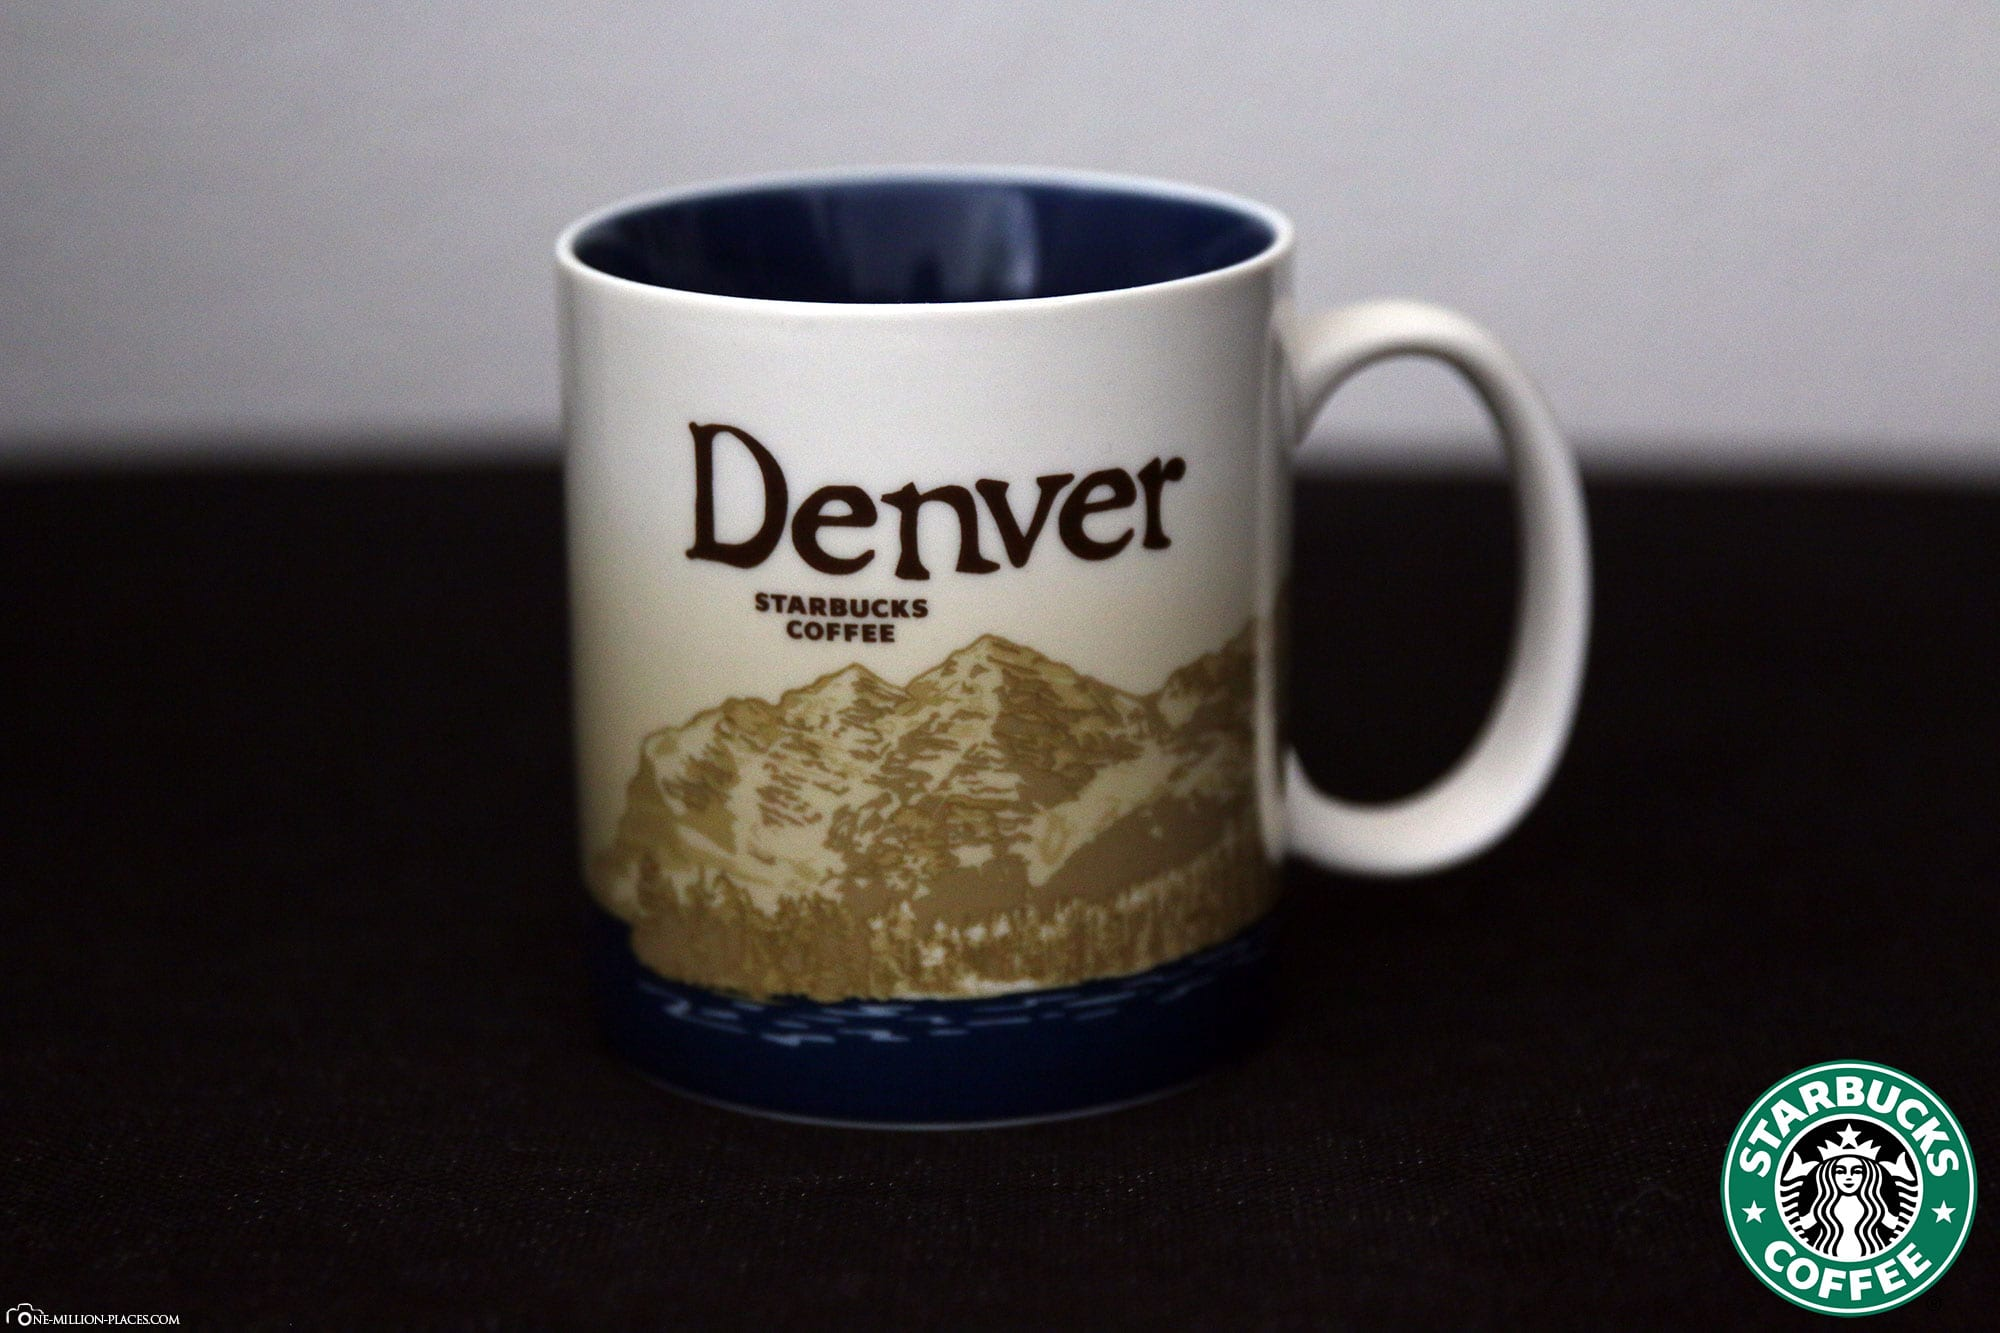 Denver, Starbucks Cup, Global Icon Series, City Mugs, Collection, USA, Travelreport